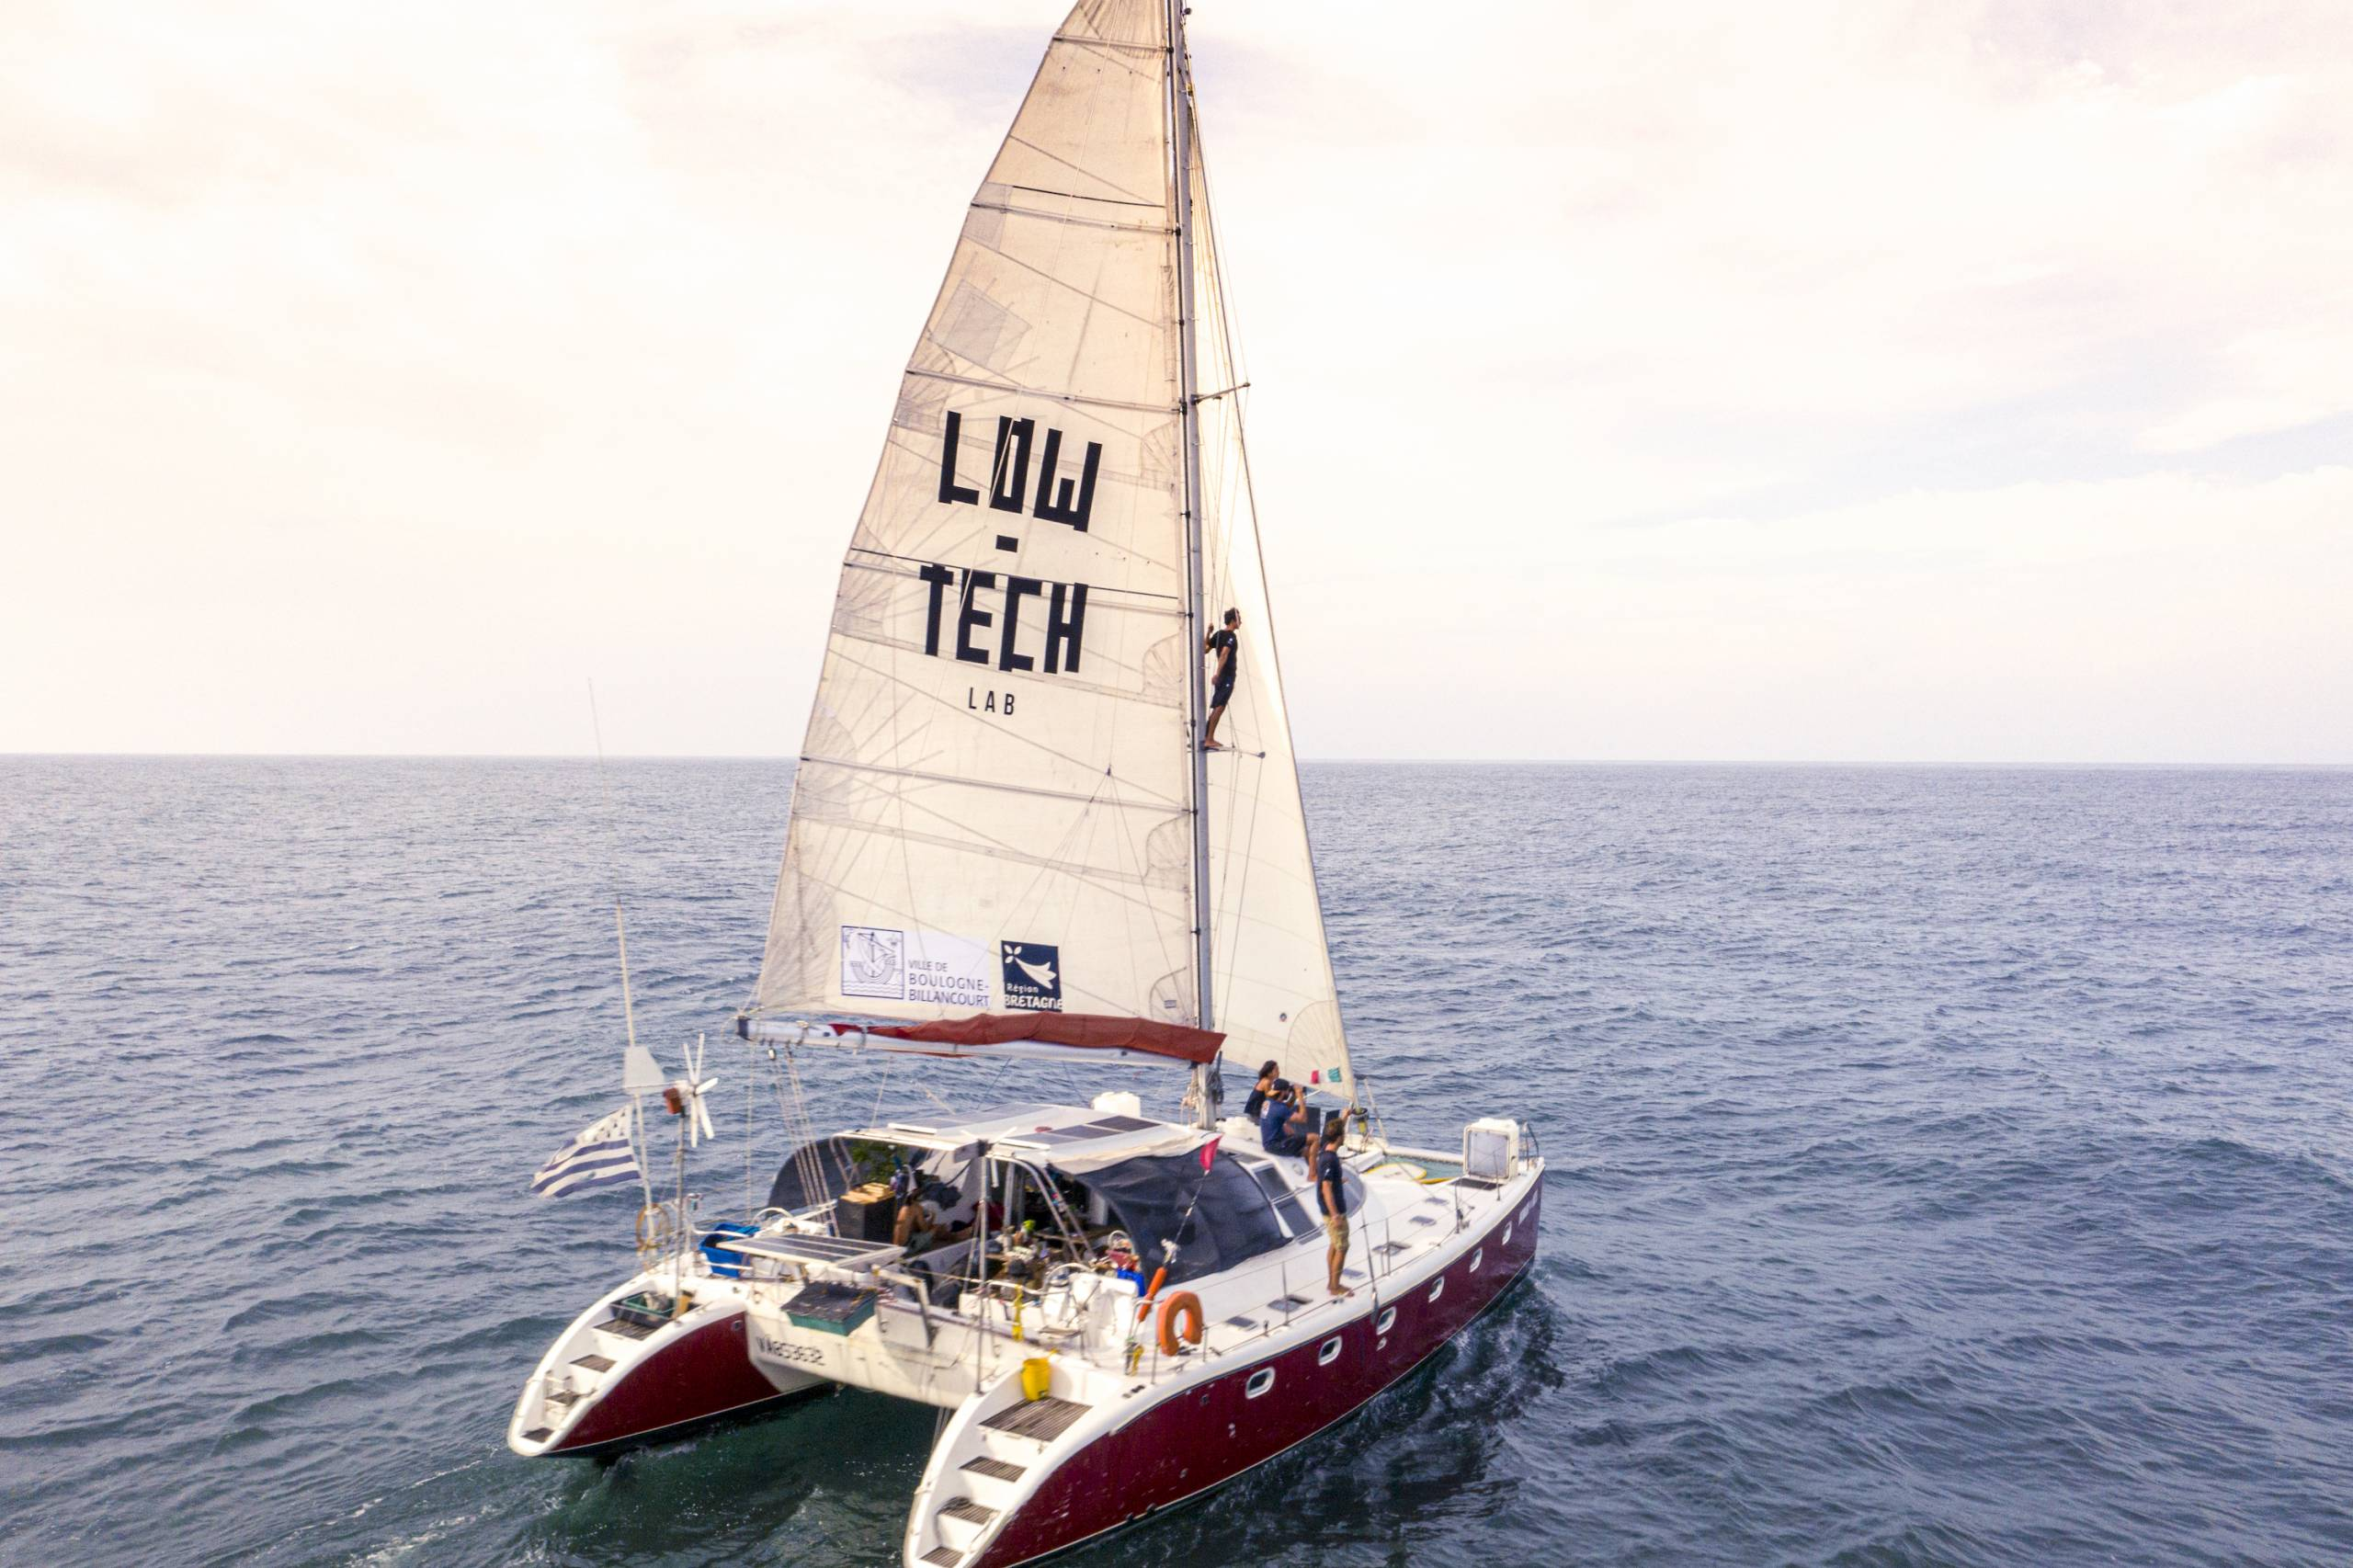 LowTech Lab sustainable sailboat off coast of Mexico